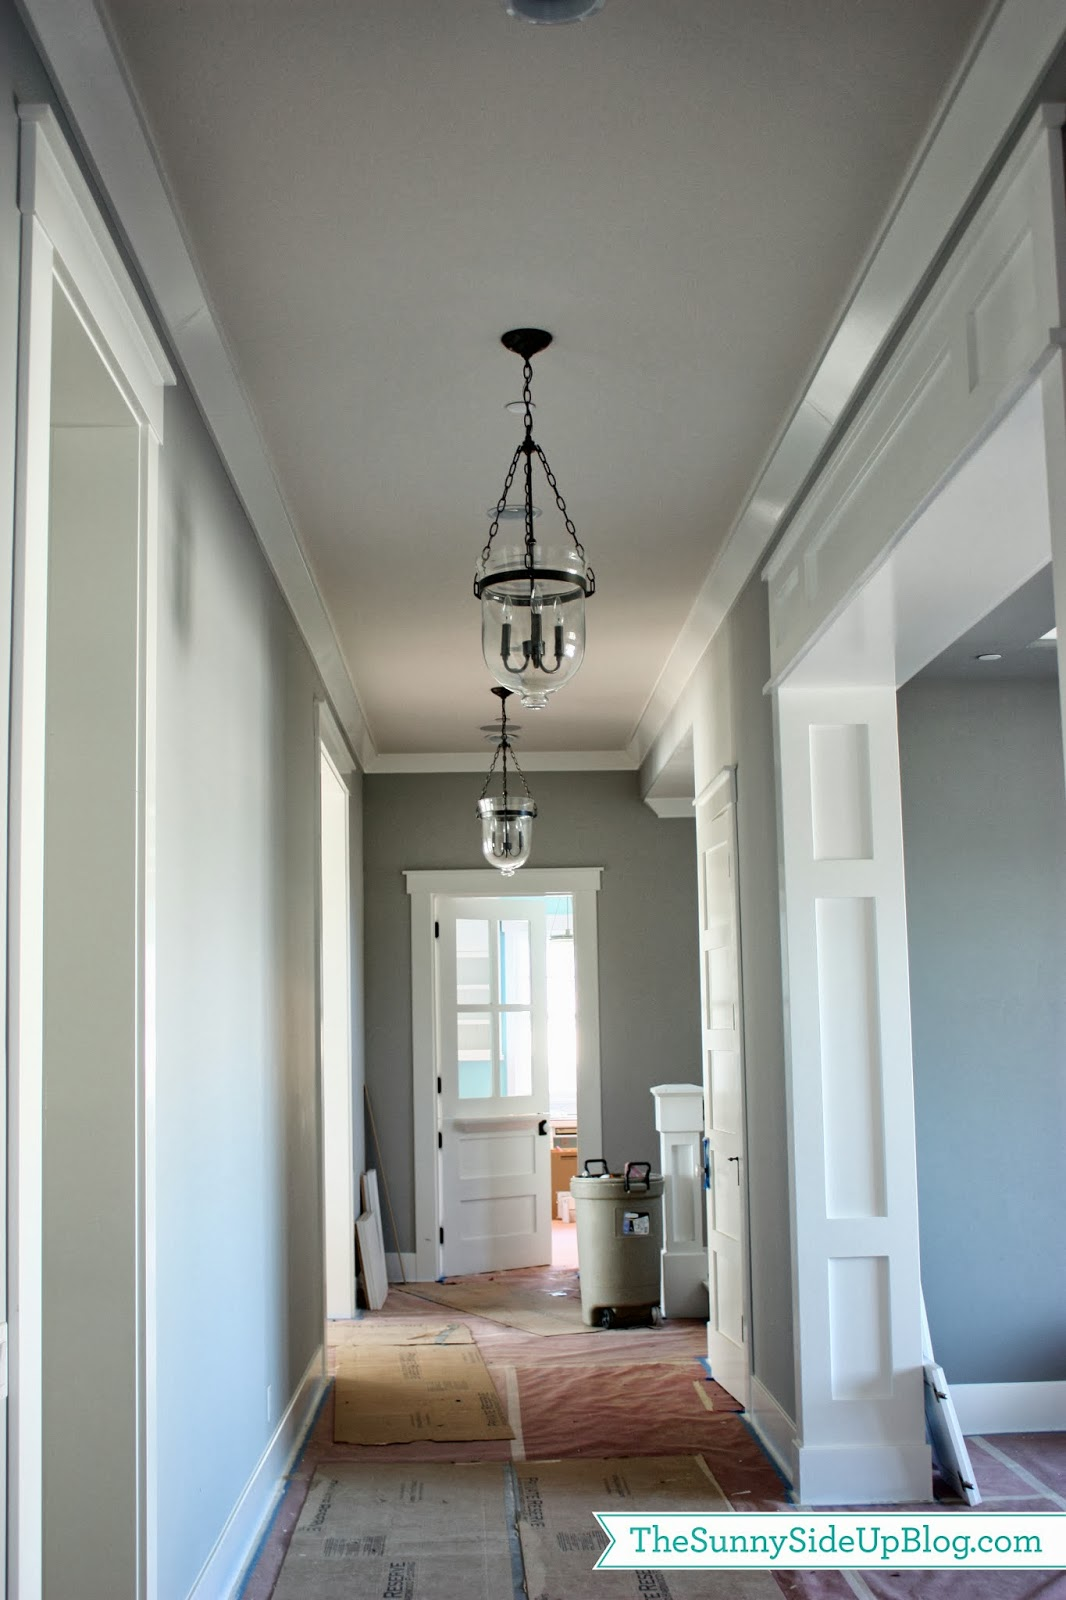 Pottery barn hundi lantern - I Put These Fun Hundi Lanterns From Pottery Barn In My Hallway They Were The Lights That I Had For My Upstairs Hallway Too But The Ceiling Isn T As High